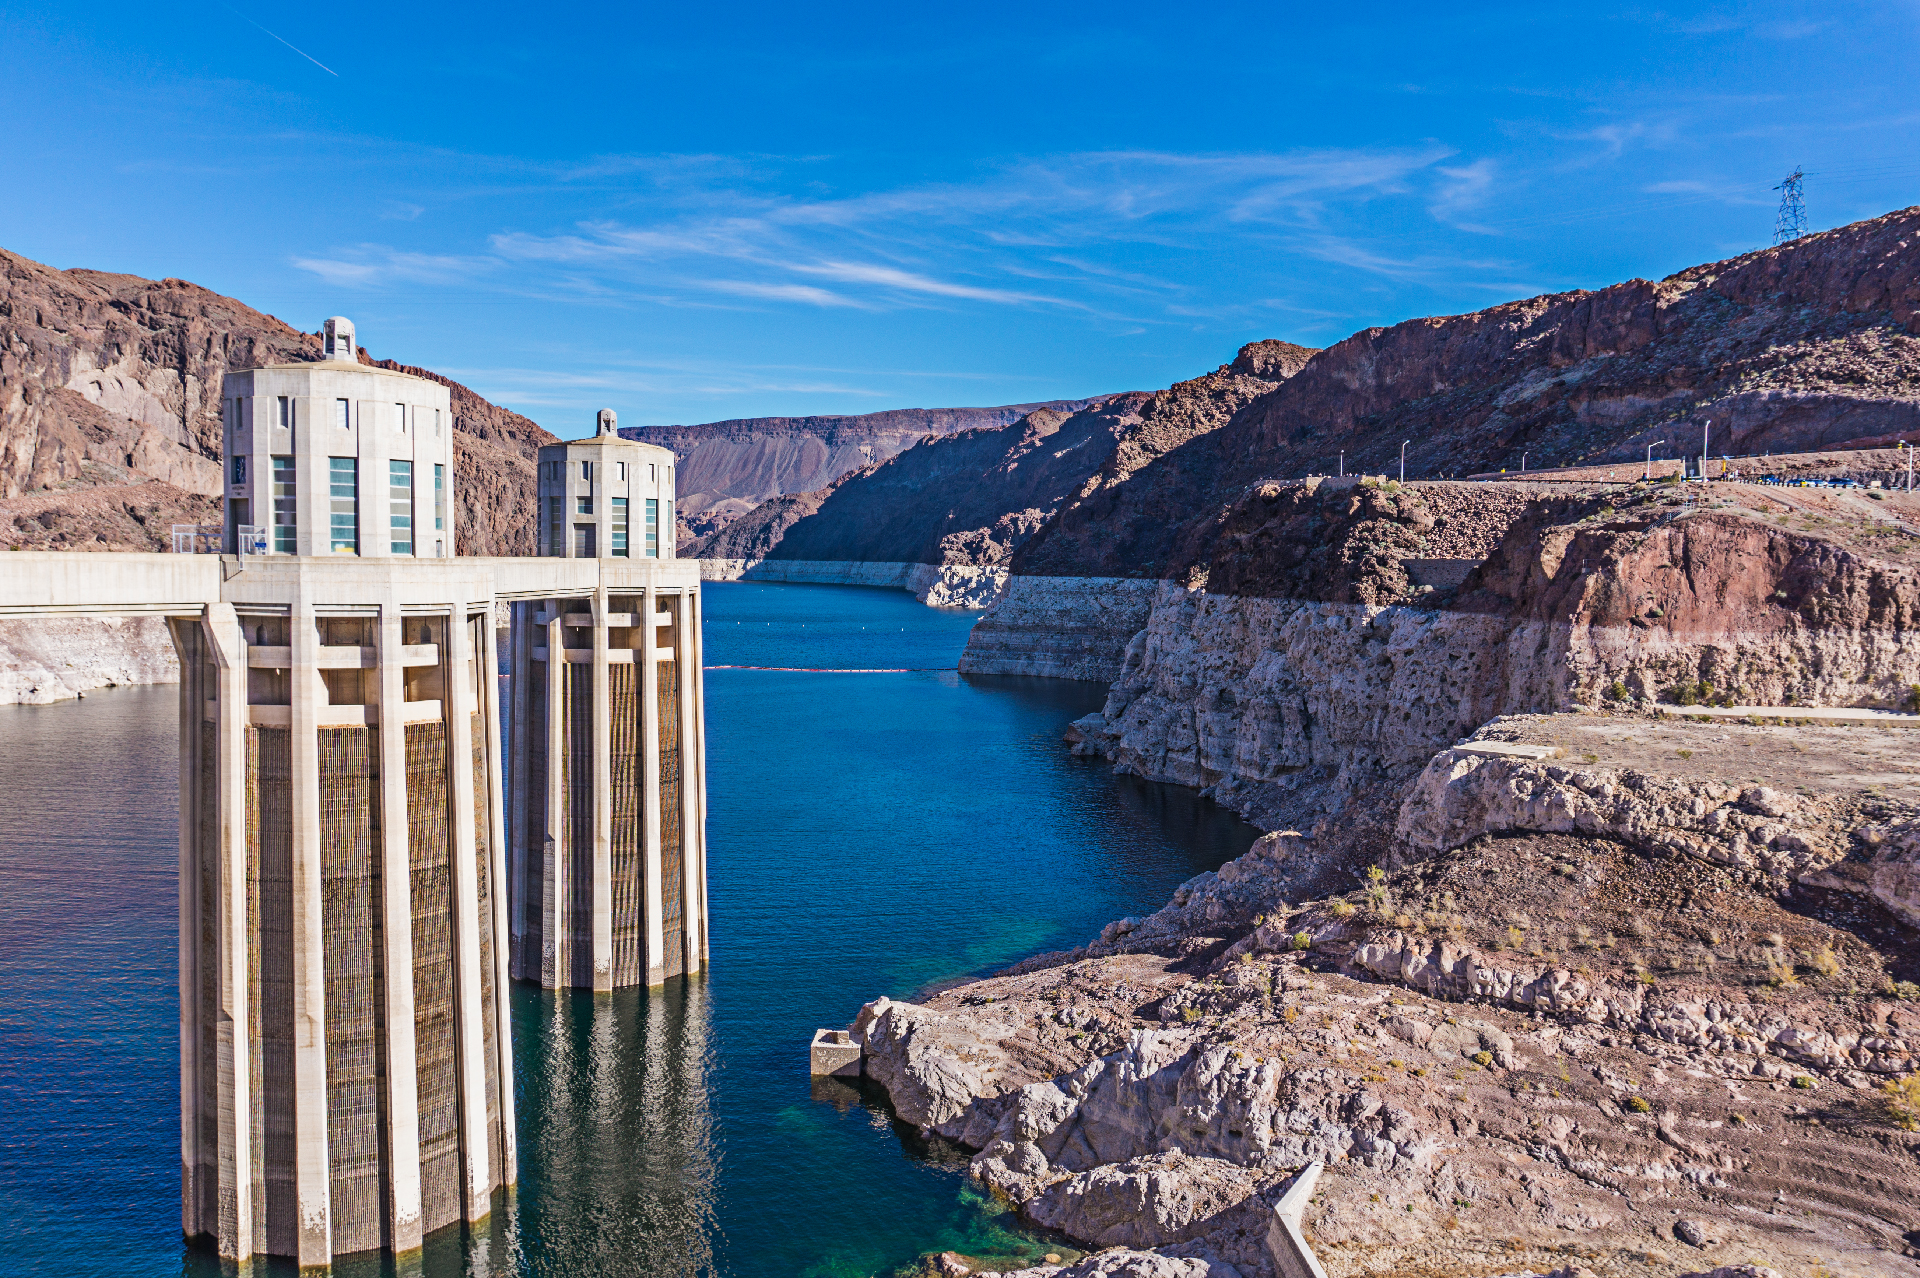 Hoover Dam Foto#1 (Lake Mead/ ColoradoRiver)